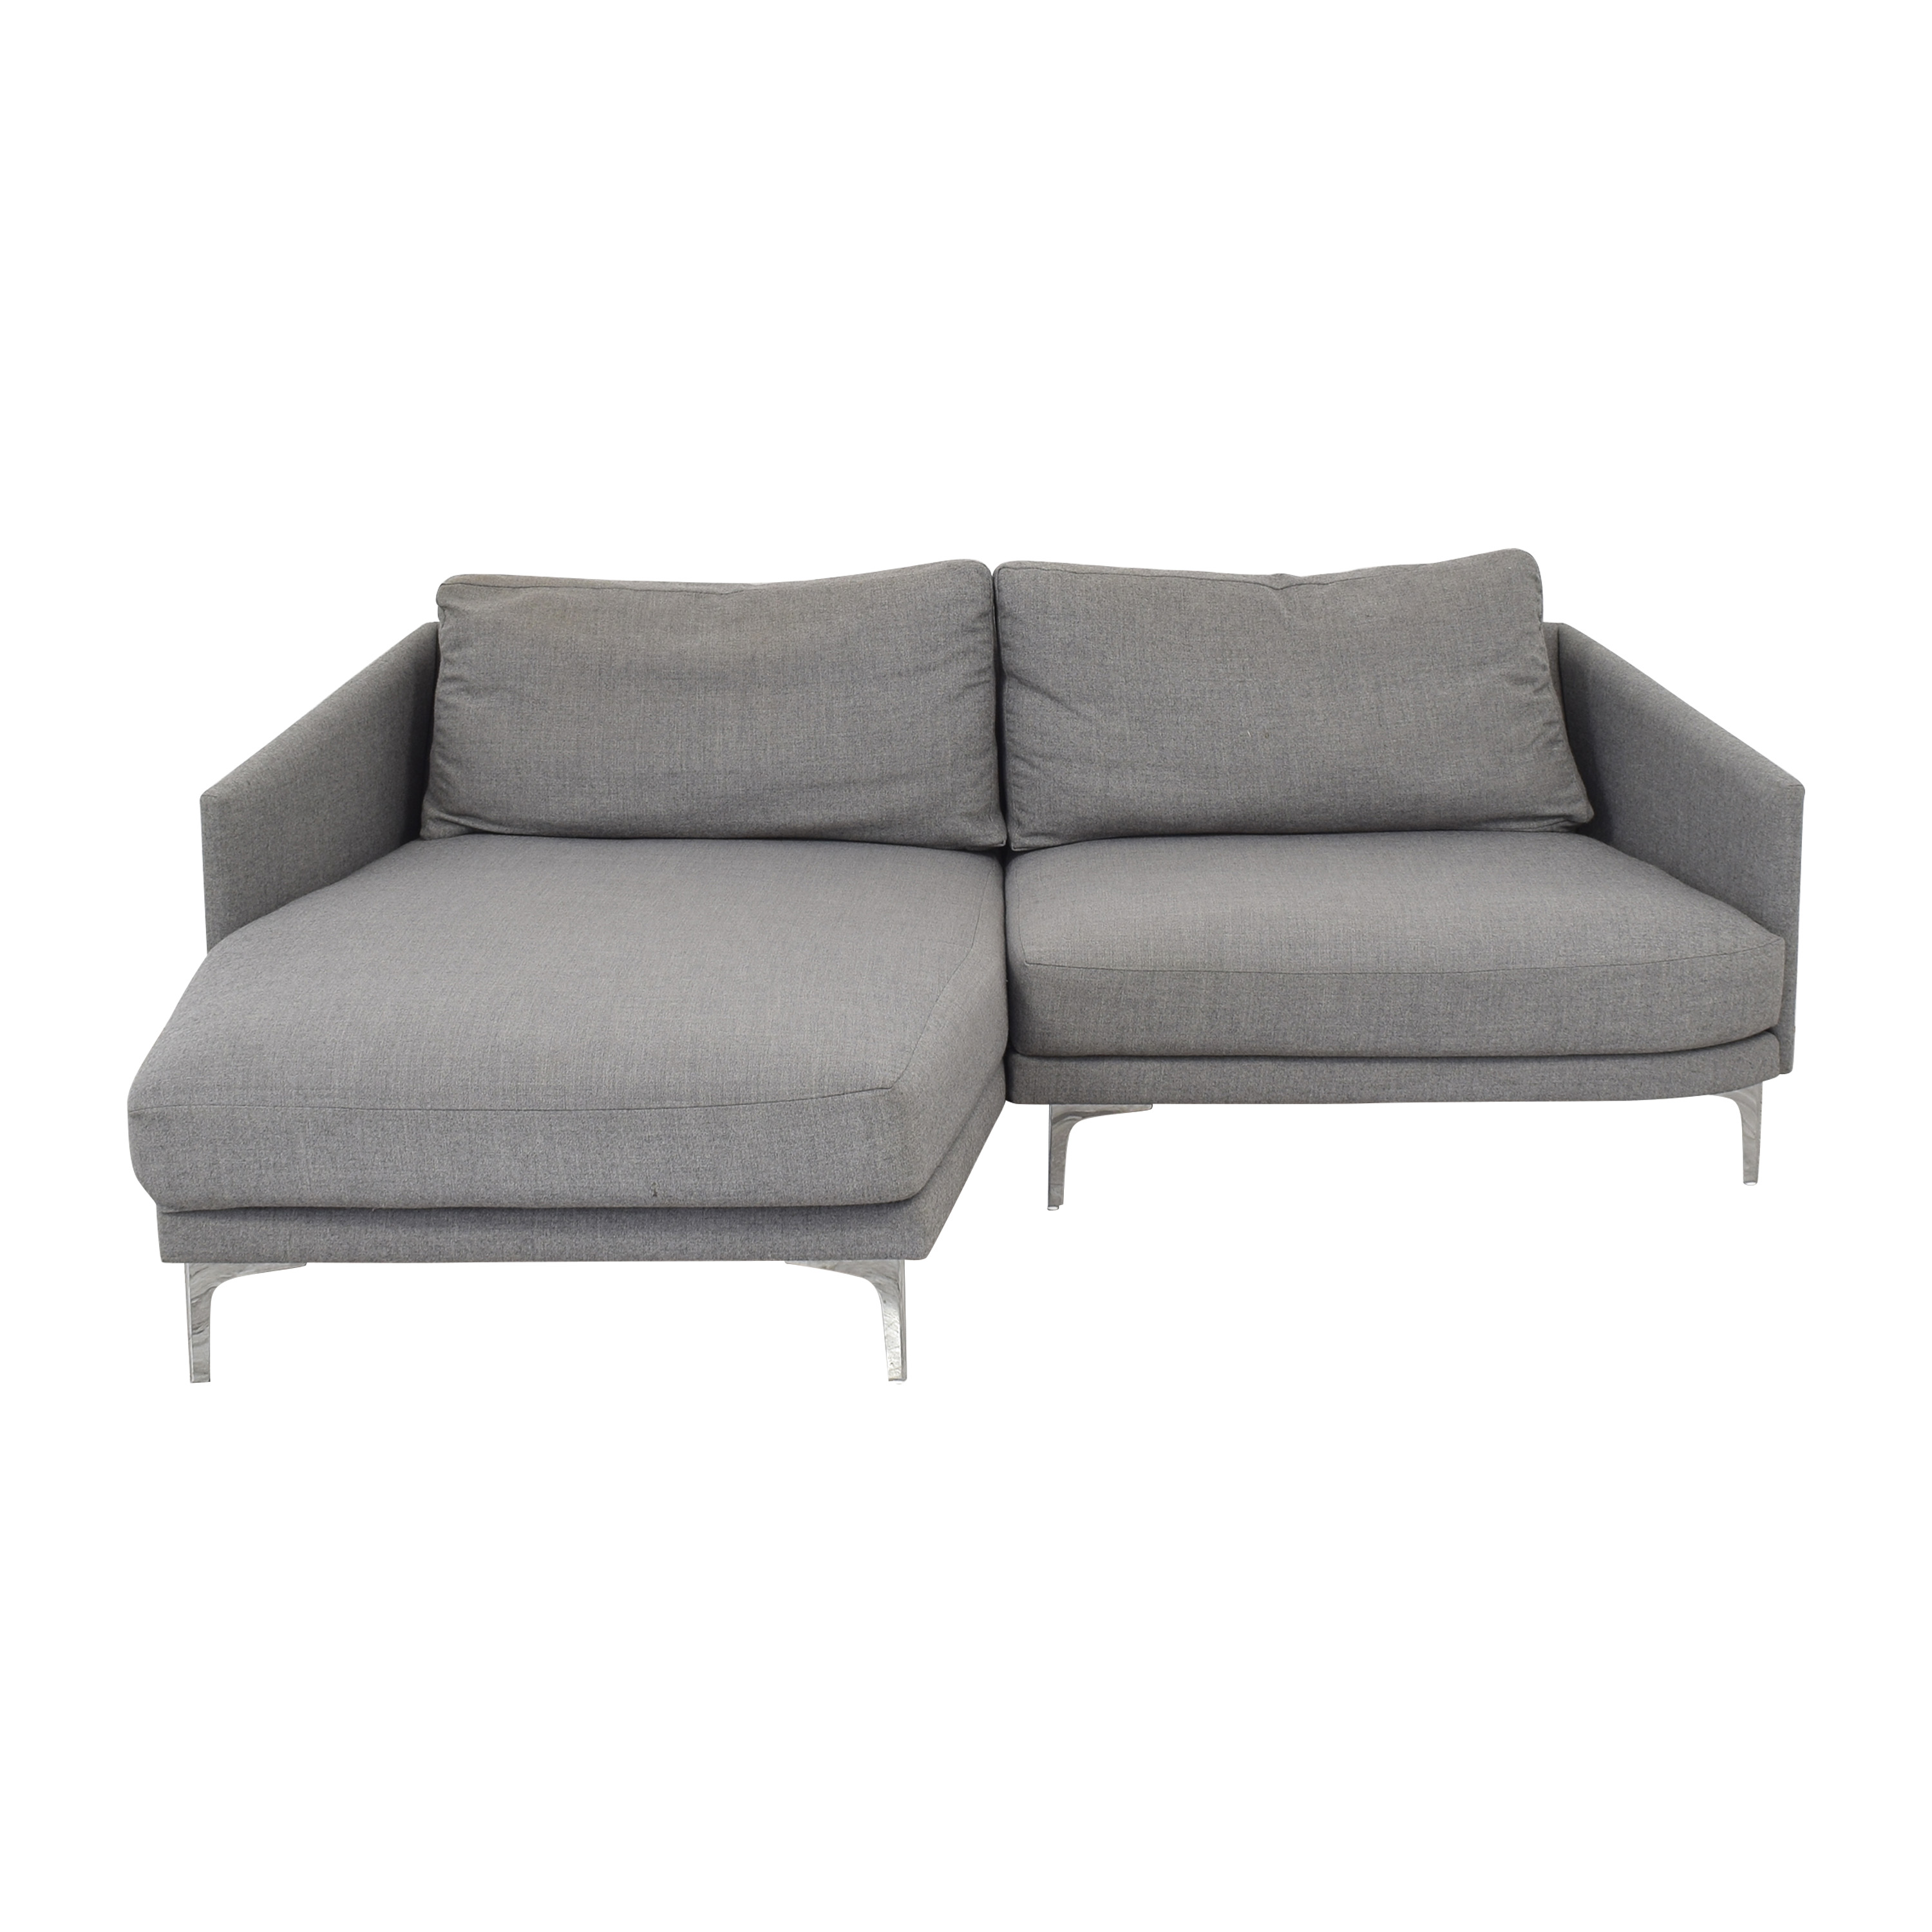 Design Within Reach Design Within Reach Camber Sectional Sofa discount